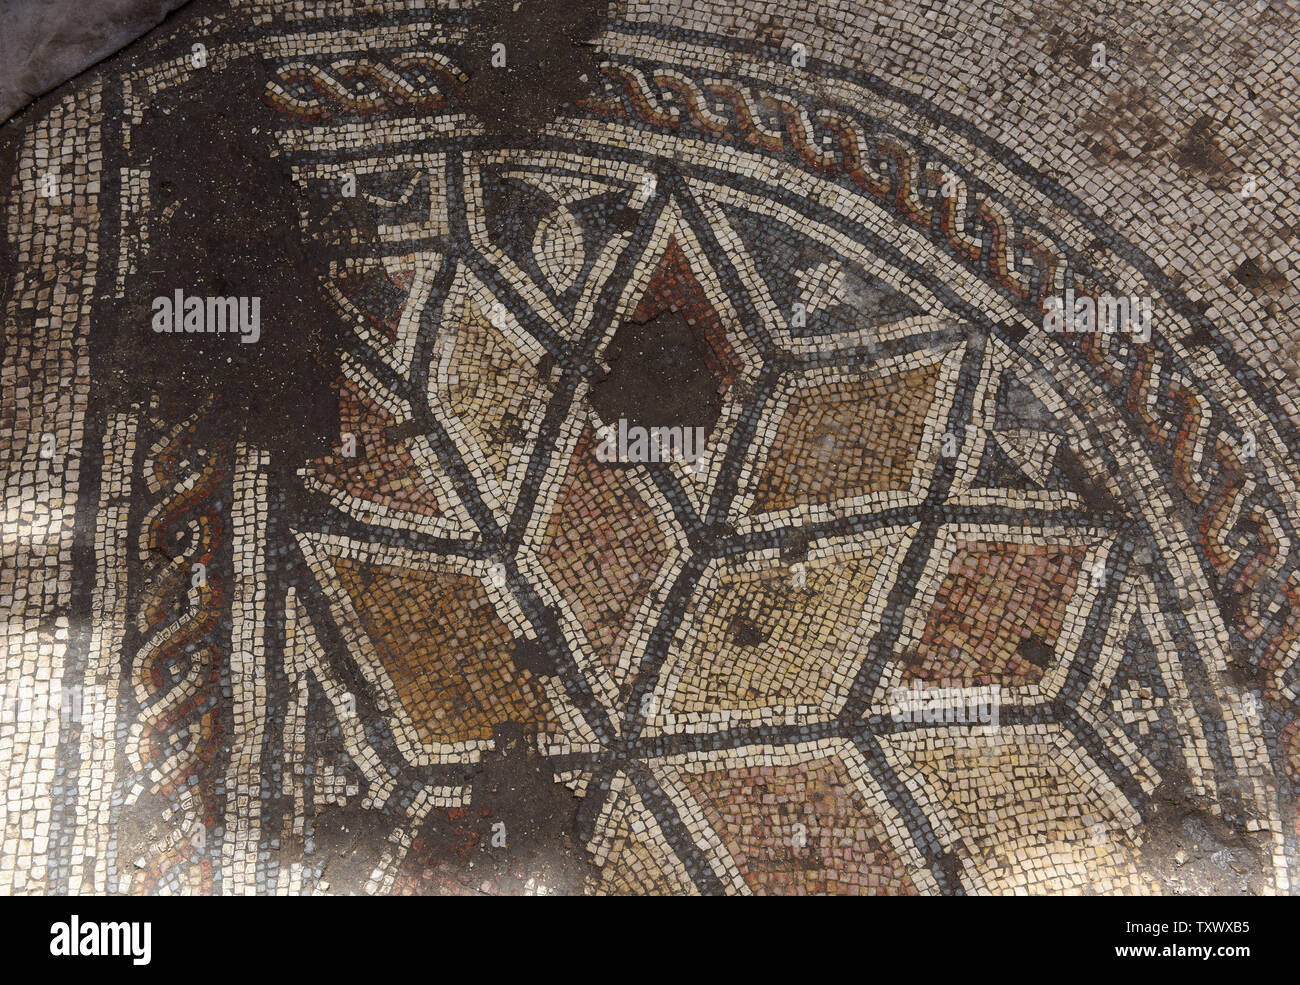 A mosaic is seen in the 'Roma and Augusta Temple' that is being excavated by the Israeli Antiquity Authority in Caesarea, Israel, April 26, 2017. The Temple was constructed in the first century by King Herod in honor of Augustus Caesar. The Edmond de Rothschild Foundations is investing approximately $275,000 to expose and restore Caesarea's hidden treasures.  Photo by Debbie Hill/UPI - Stock Image